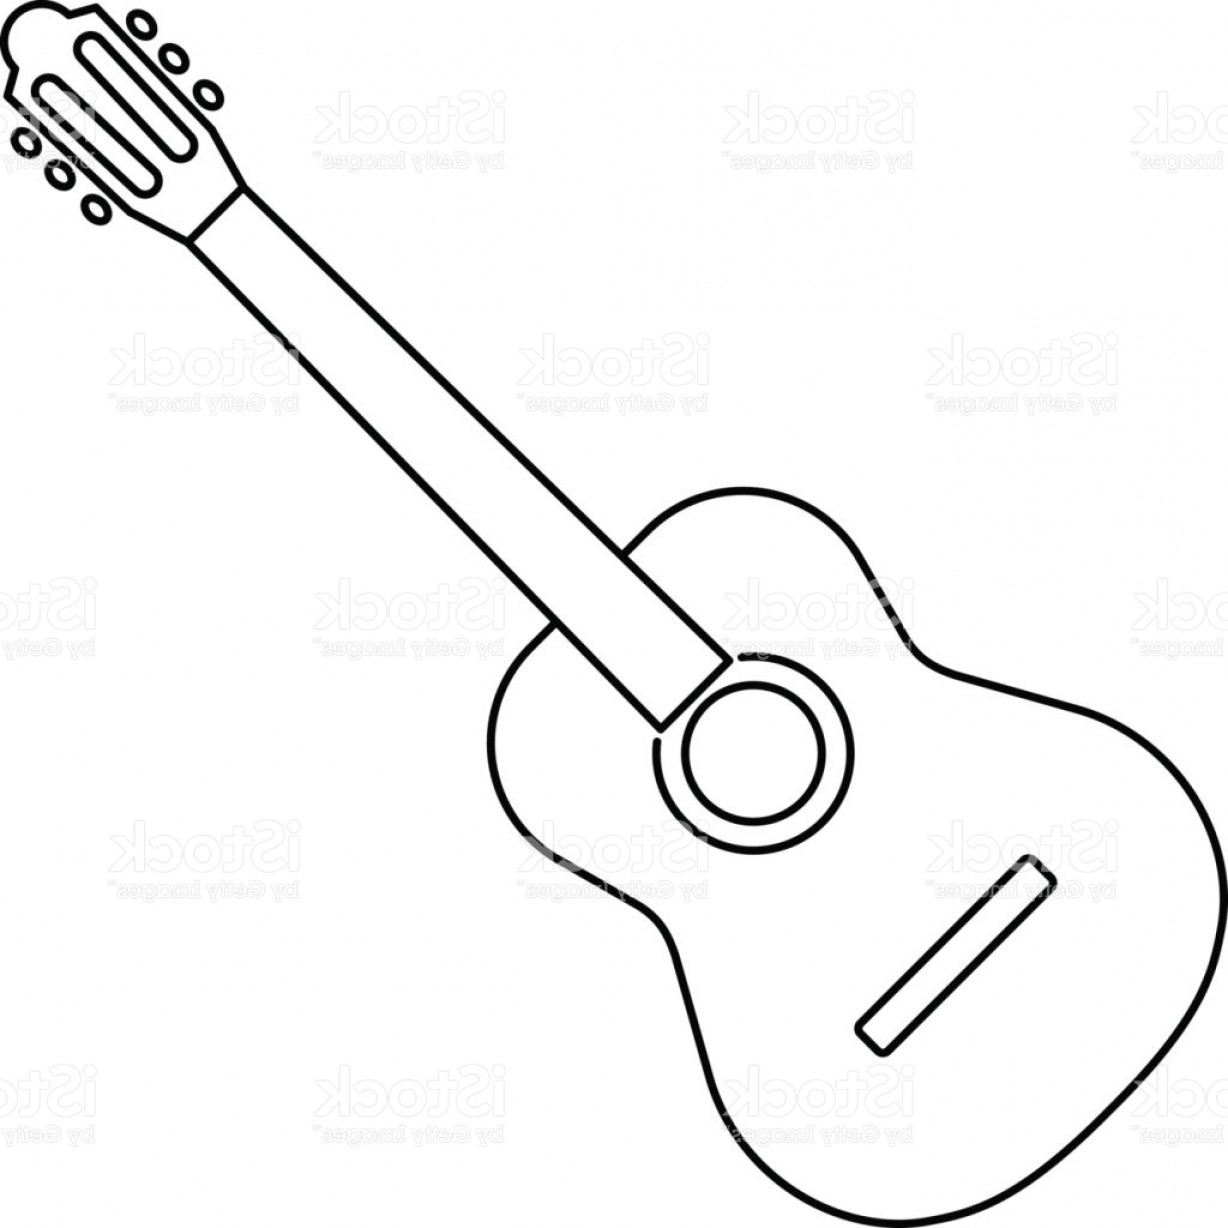 1228x1228 Icon Of Acoustic Guitar Icon Black Contour On White Background